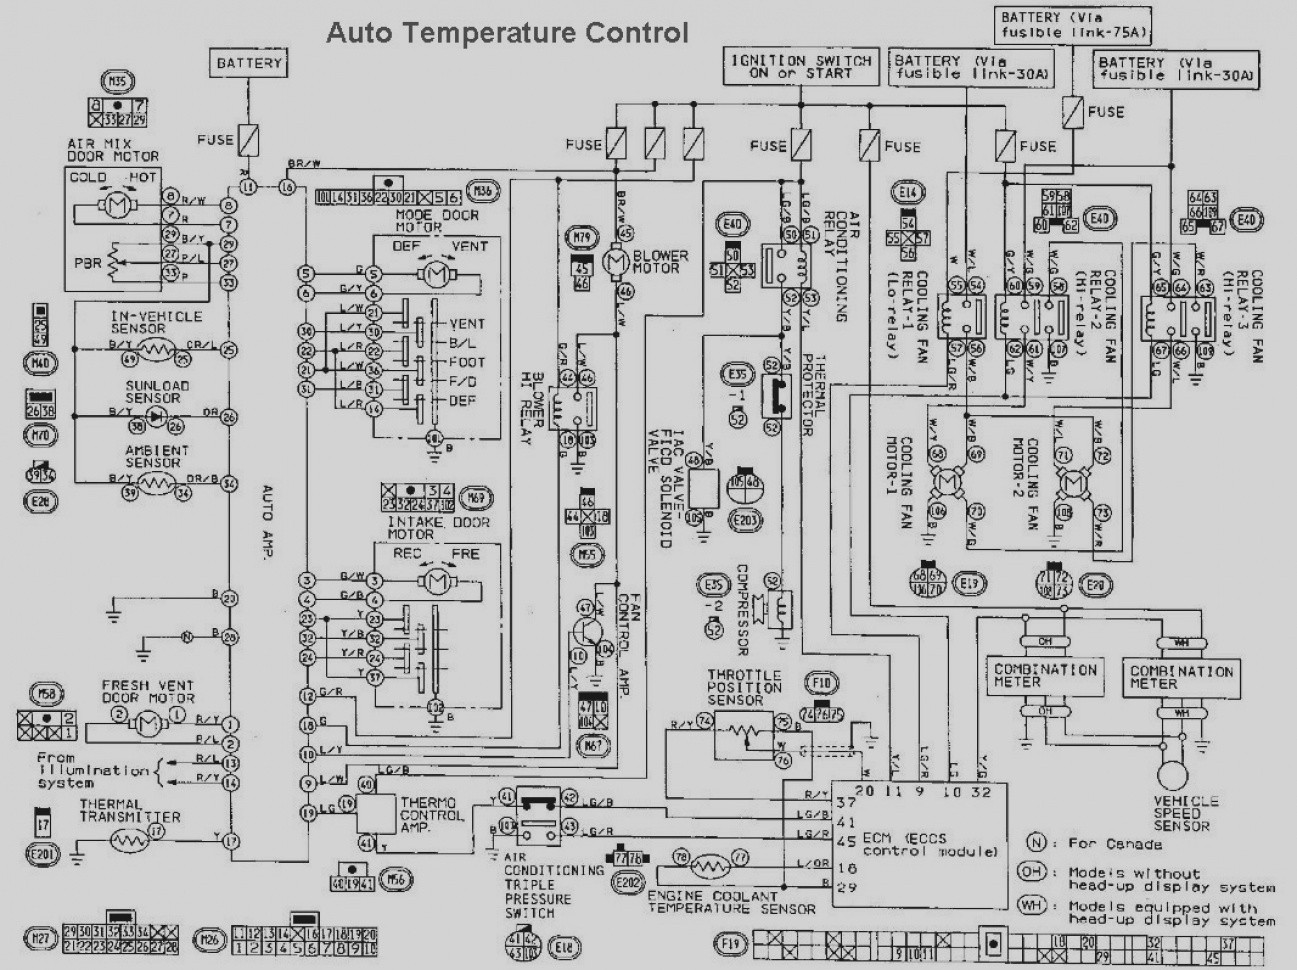 nissan a33 schematics diagram wiring diagram suzuki schematic diagram nissan a33 schematics diagram #9